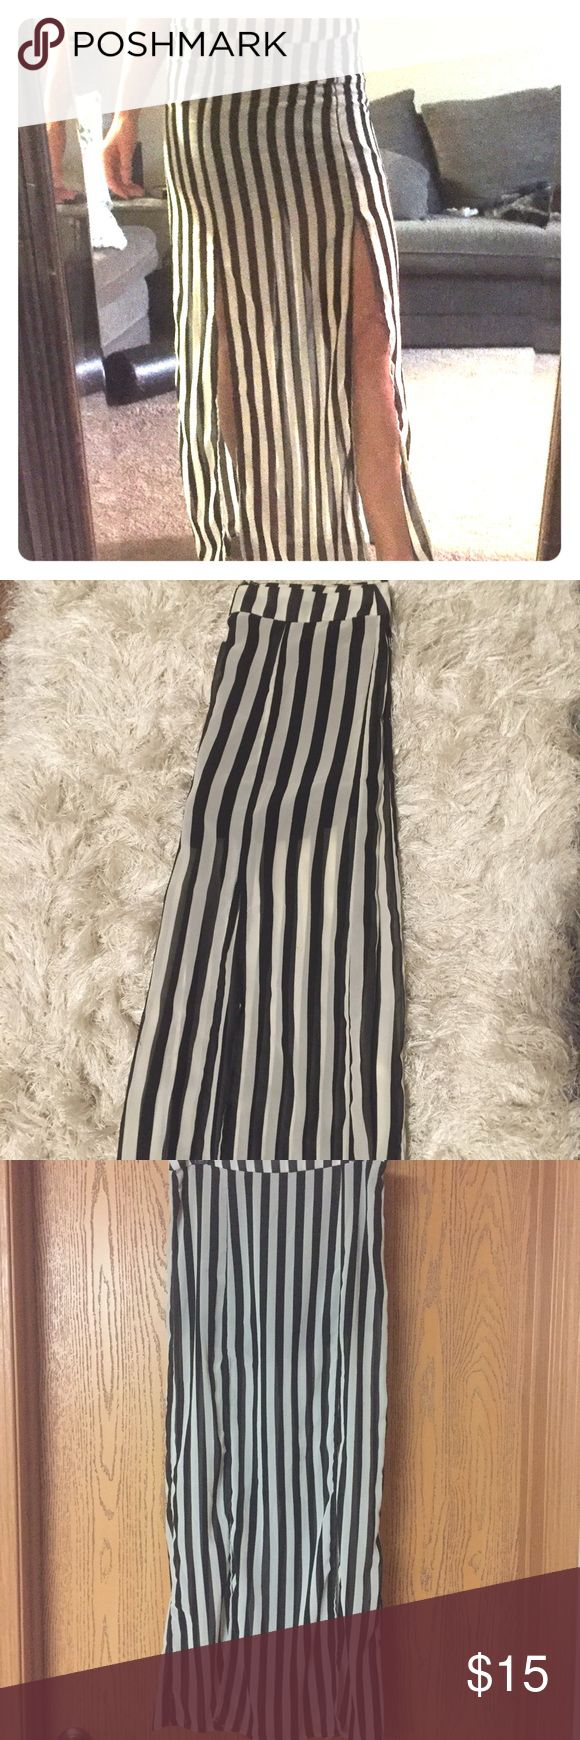 Black and White Skirt with double slits GUC- worn once or twice- zips up in the back- minimal stretch Skirts Maxi